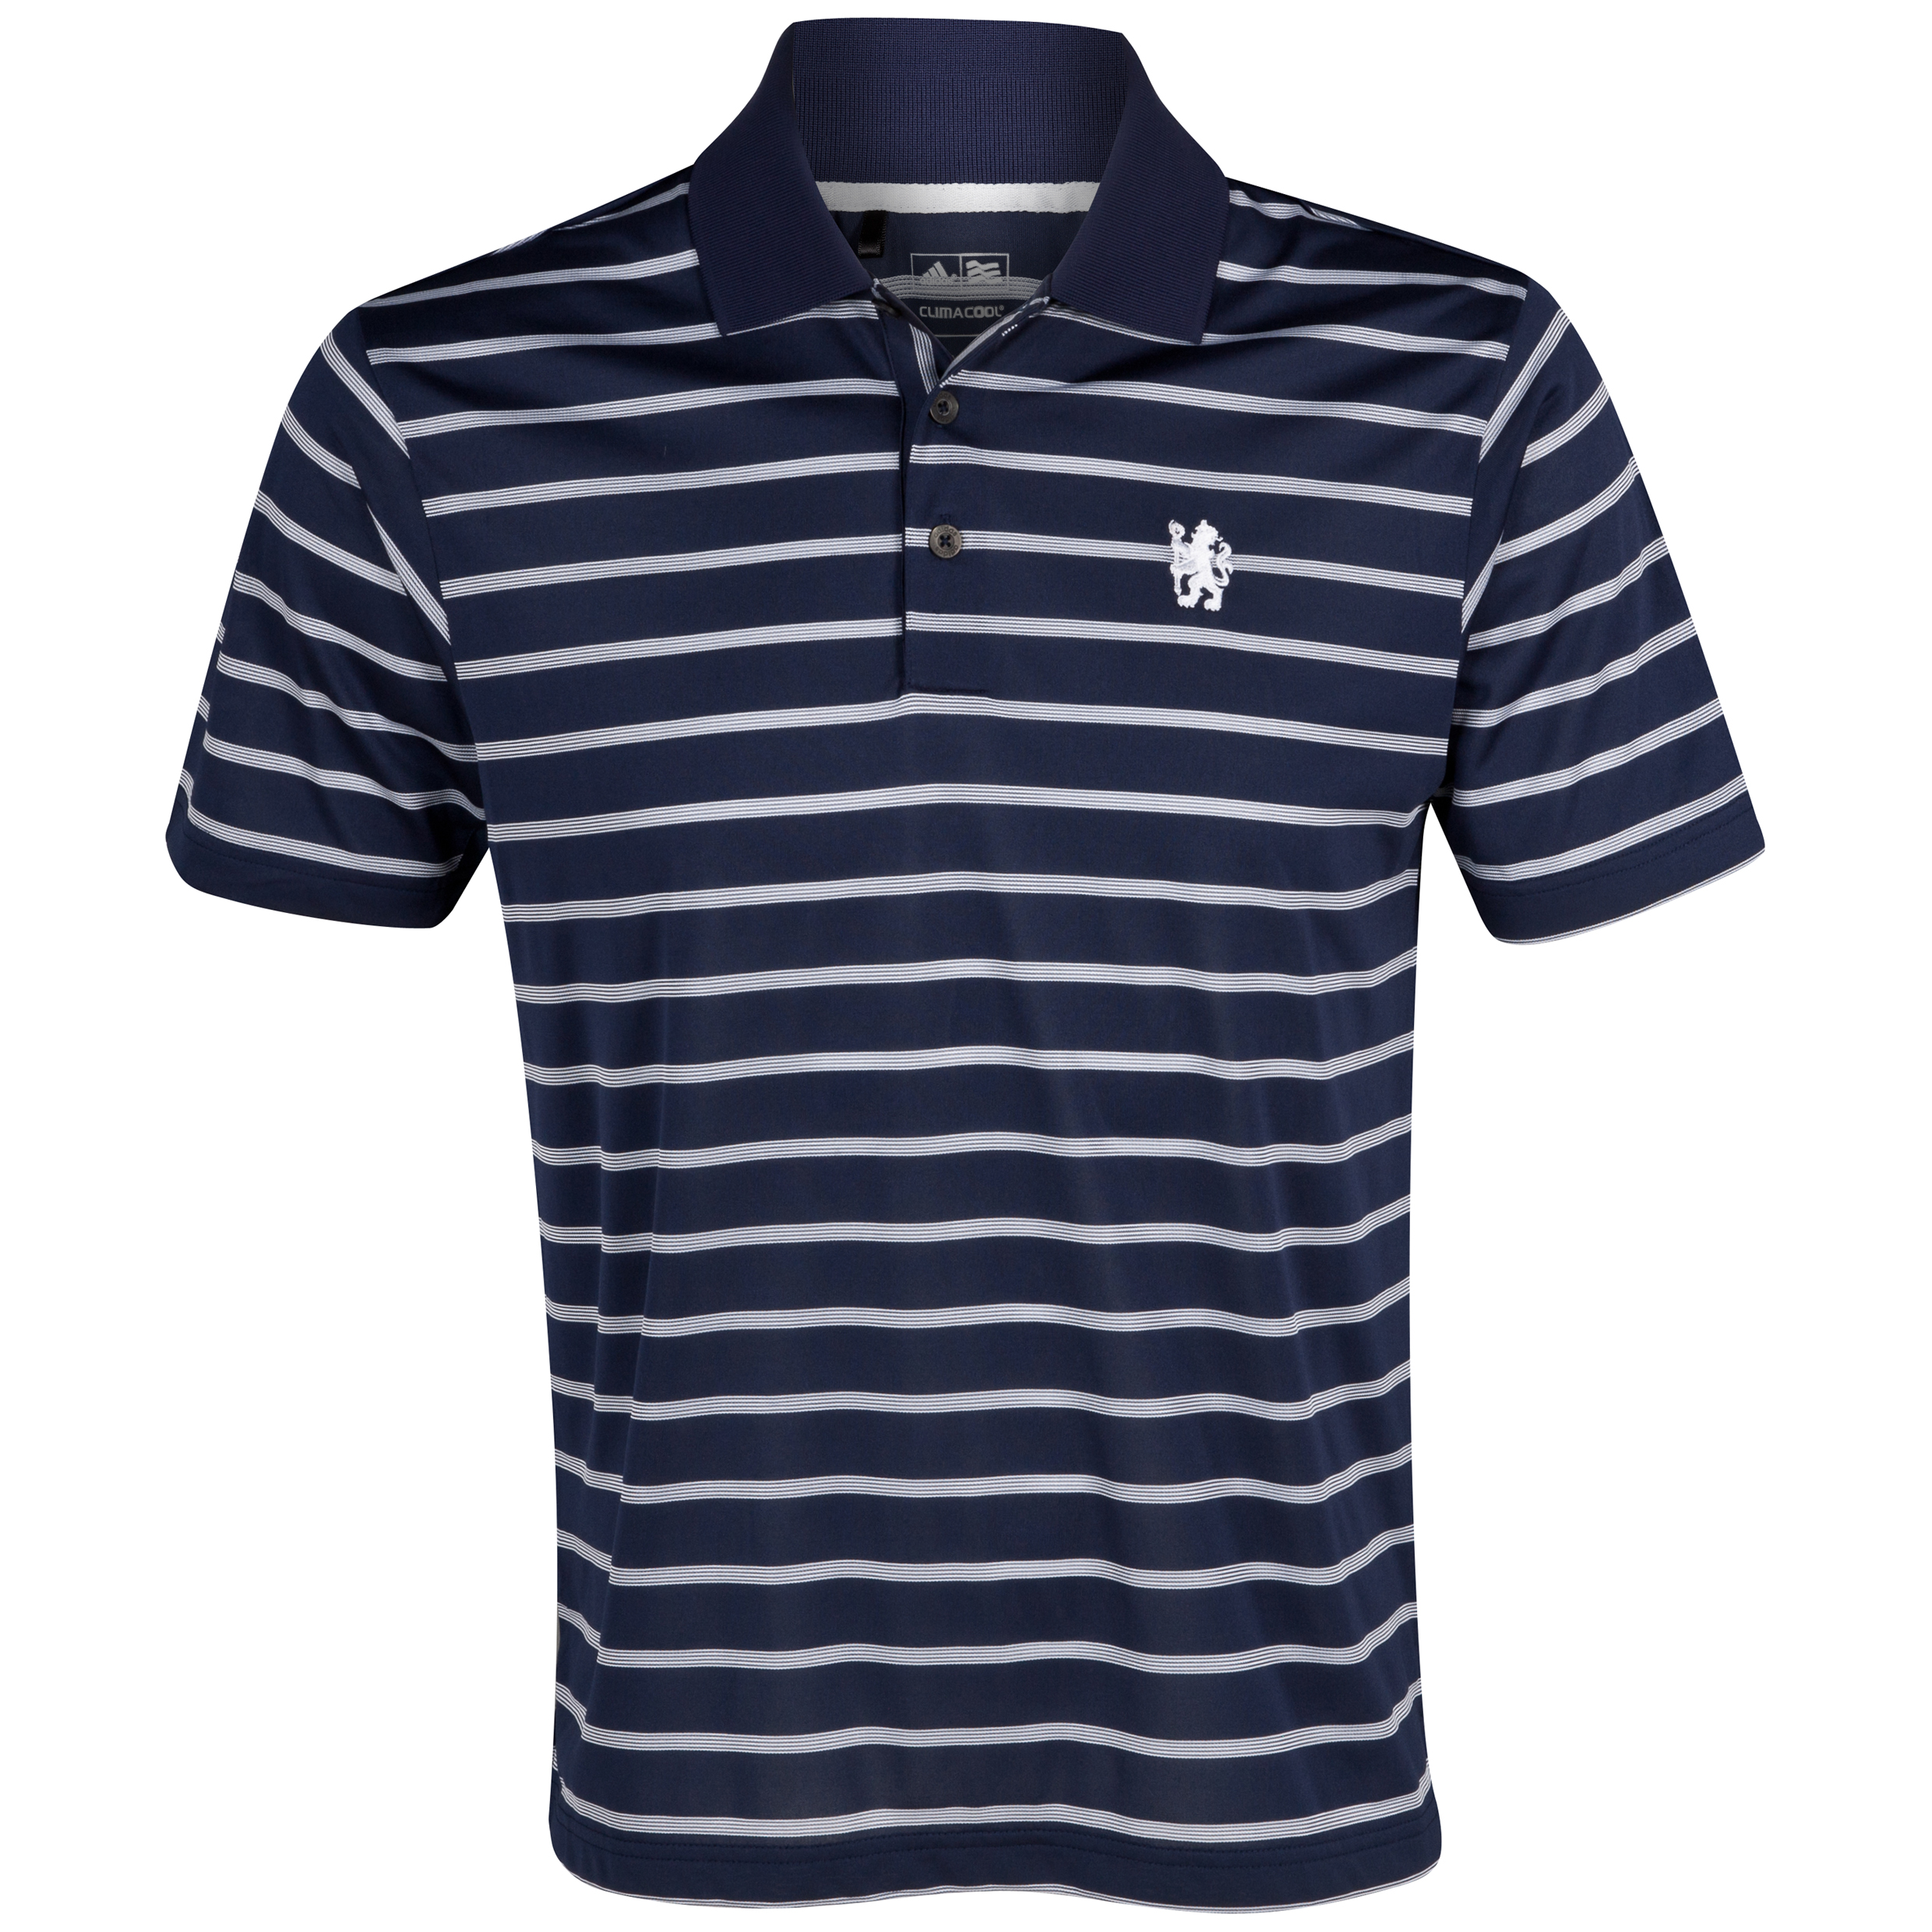 Chelsea Golf ClimaCool Textured Stripe Polo - Navy/White